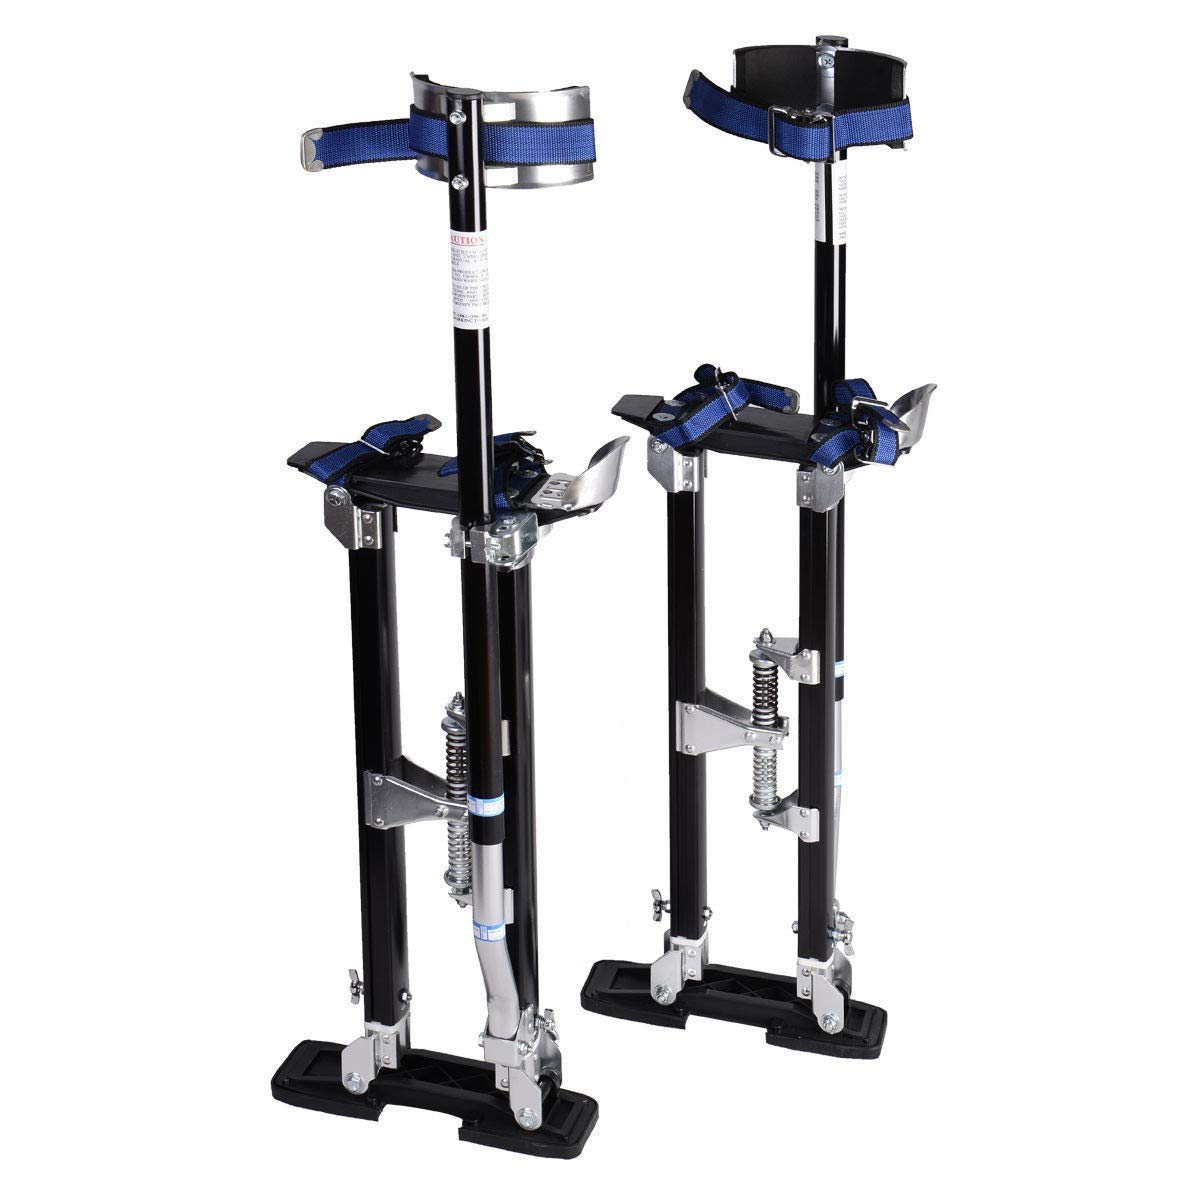 Black 18''-30'' Aluminum Stilts Business & Industrial Light Equipment & Tool Home Toys & Games Outdoor Play Equipment Stilt Aluminium Commerce, Trade, Standing, Accessories, Accessory, Tools, Walking by Lek Store